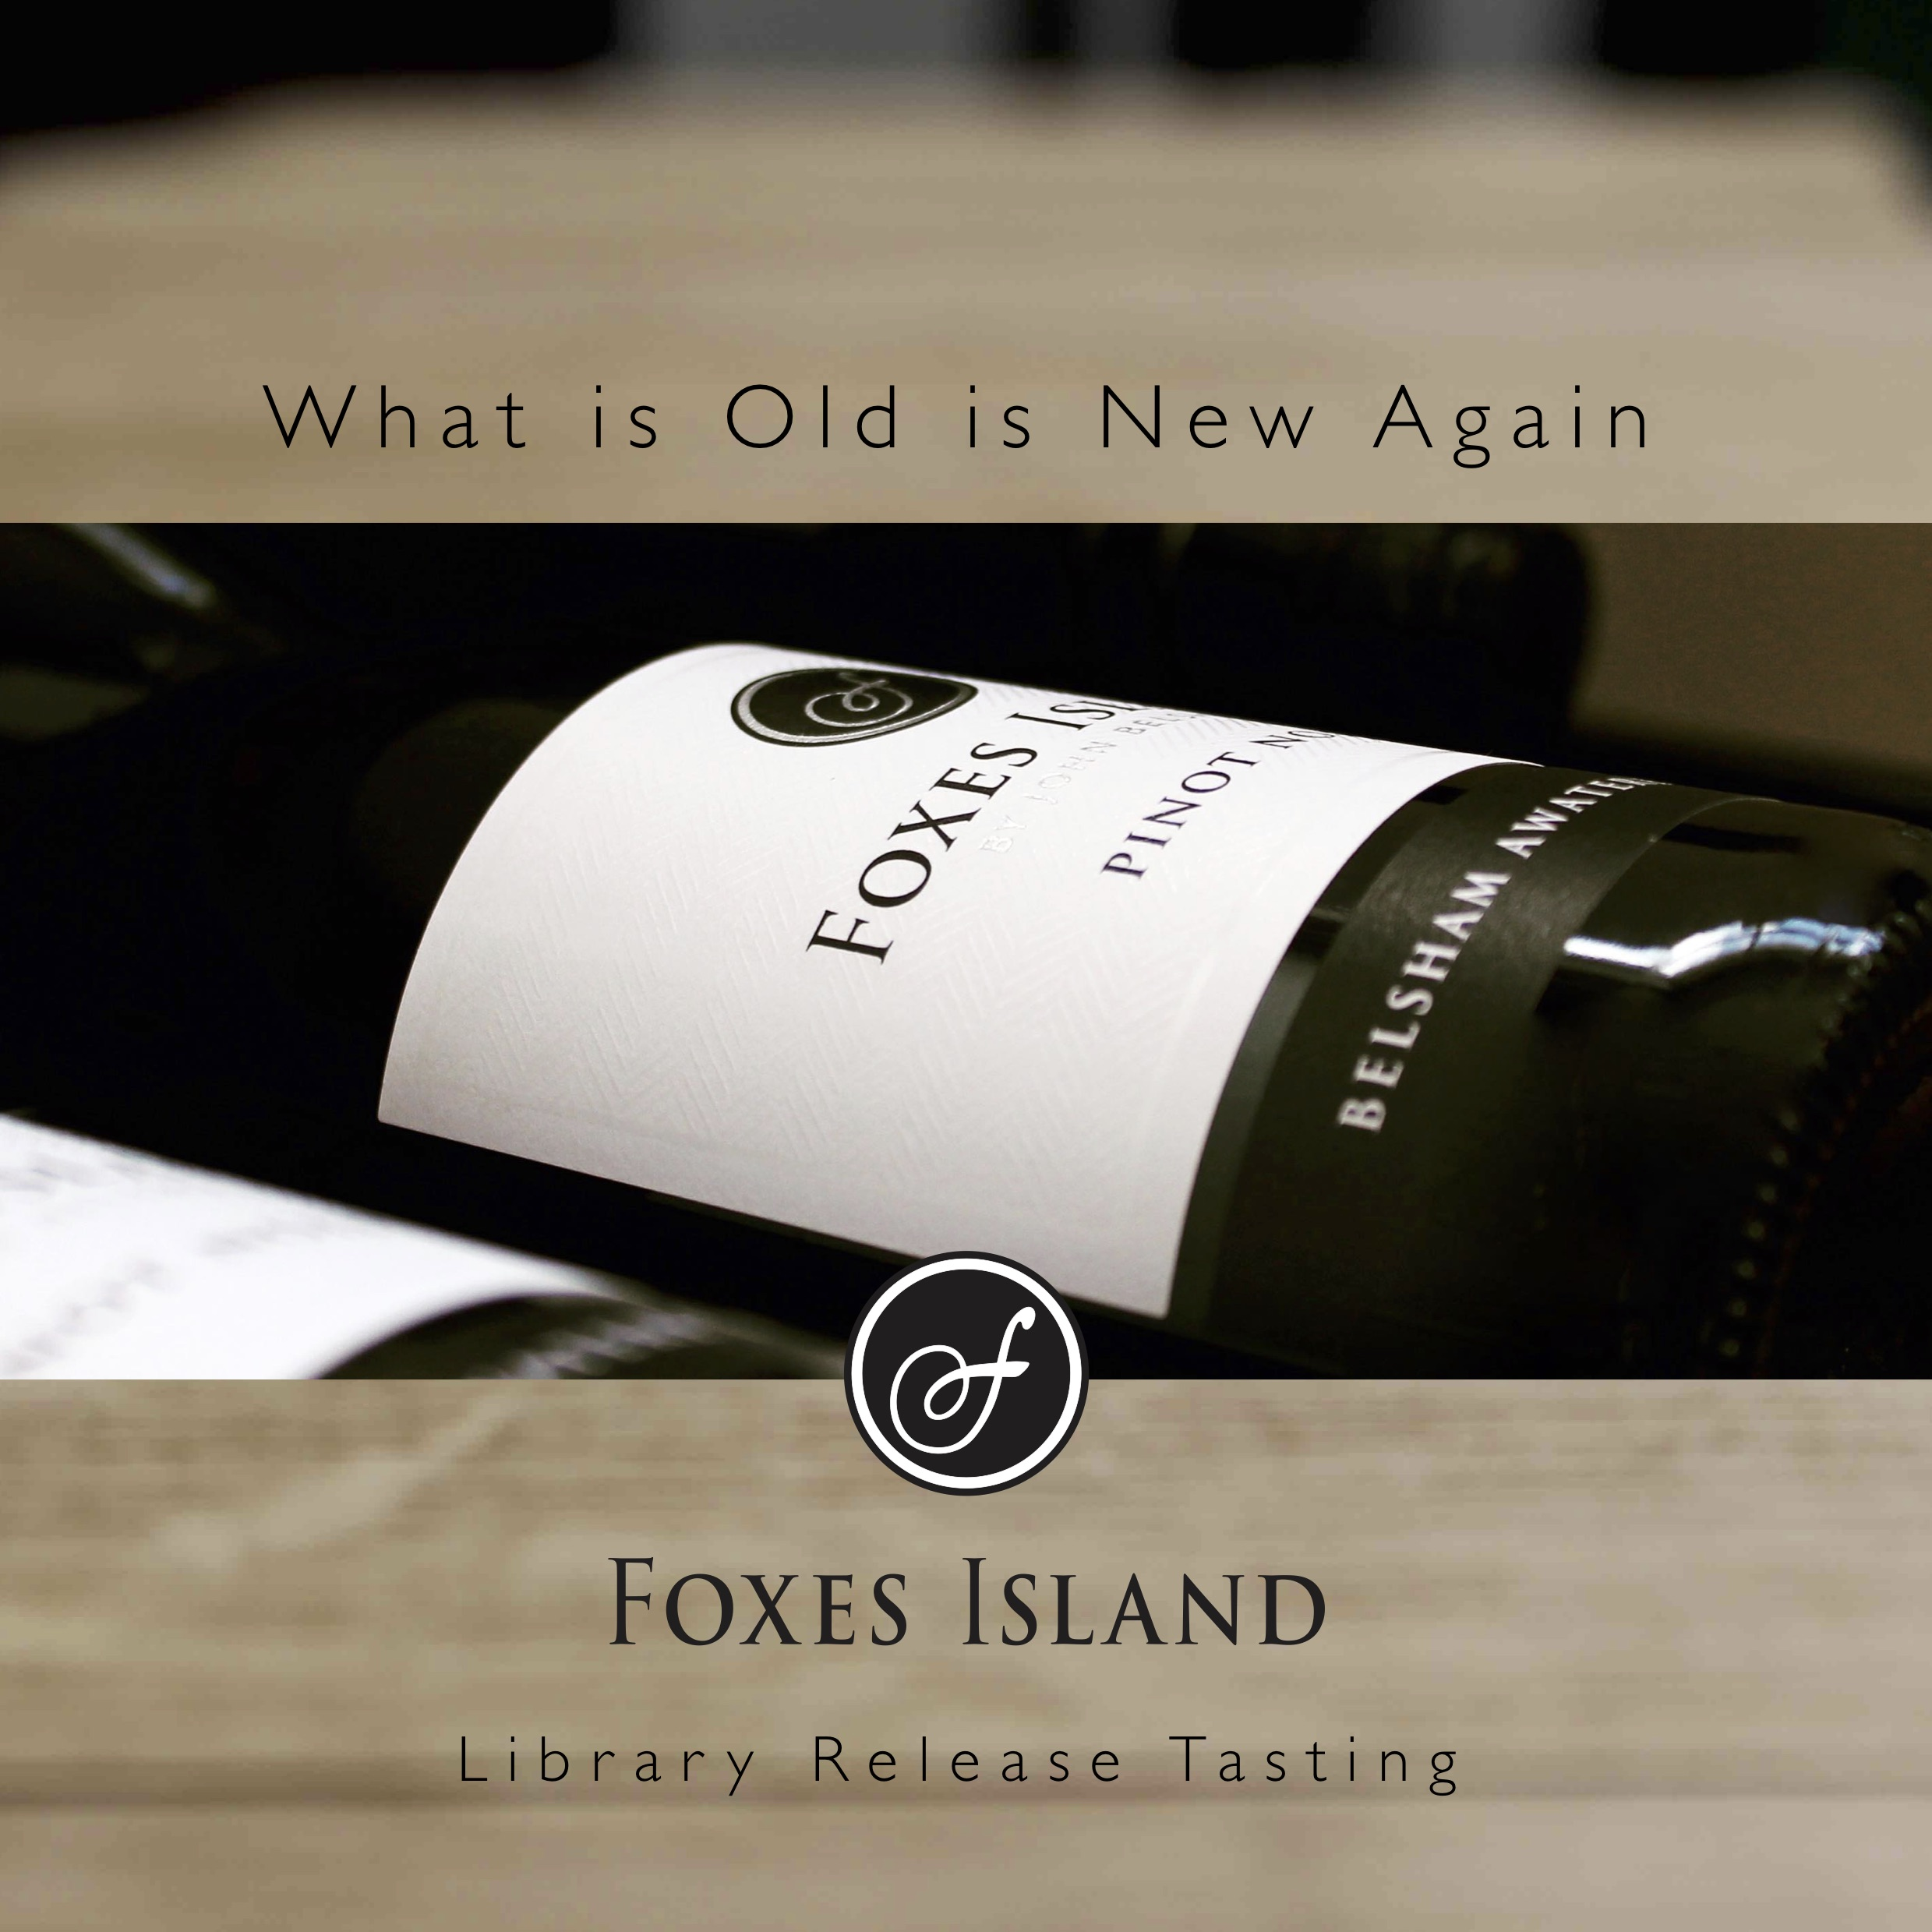 Foxes Island Library Release Tasting